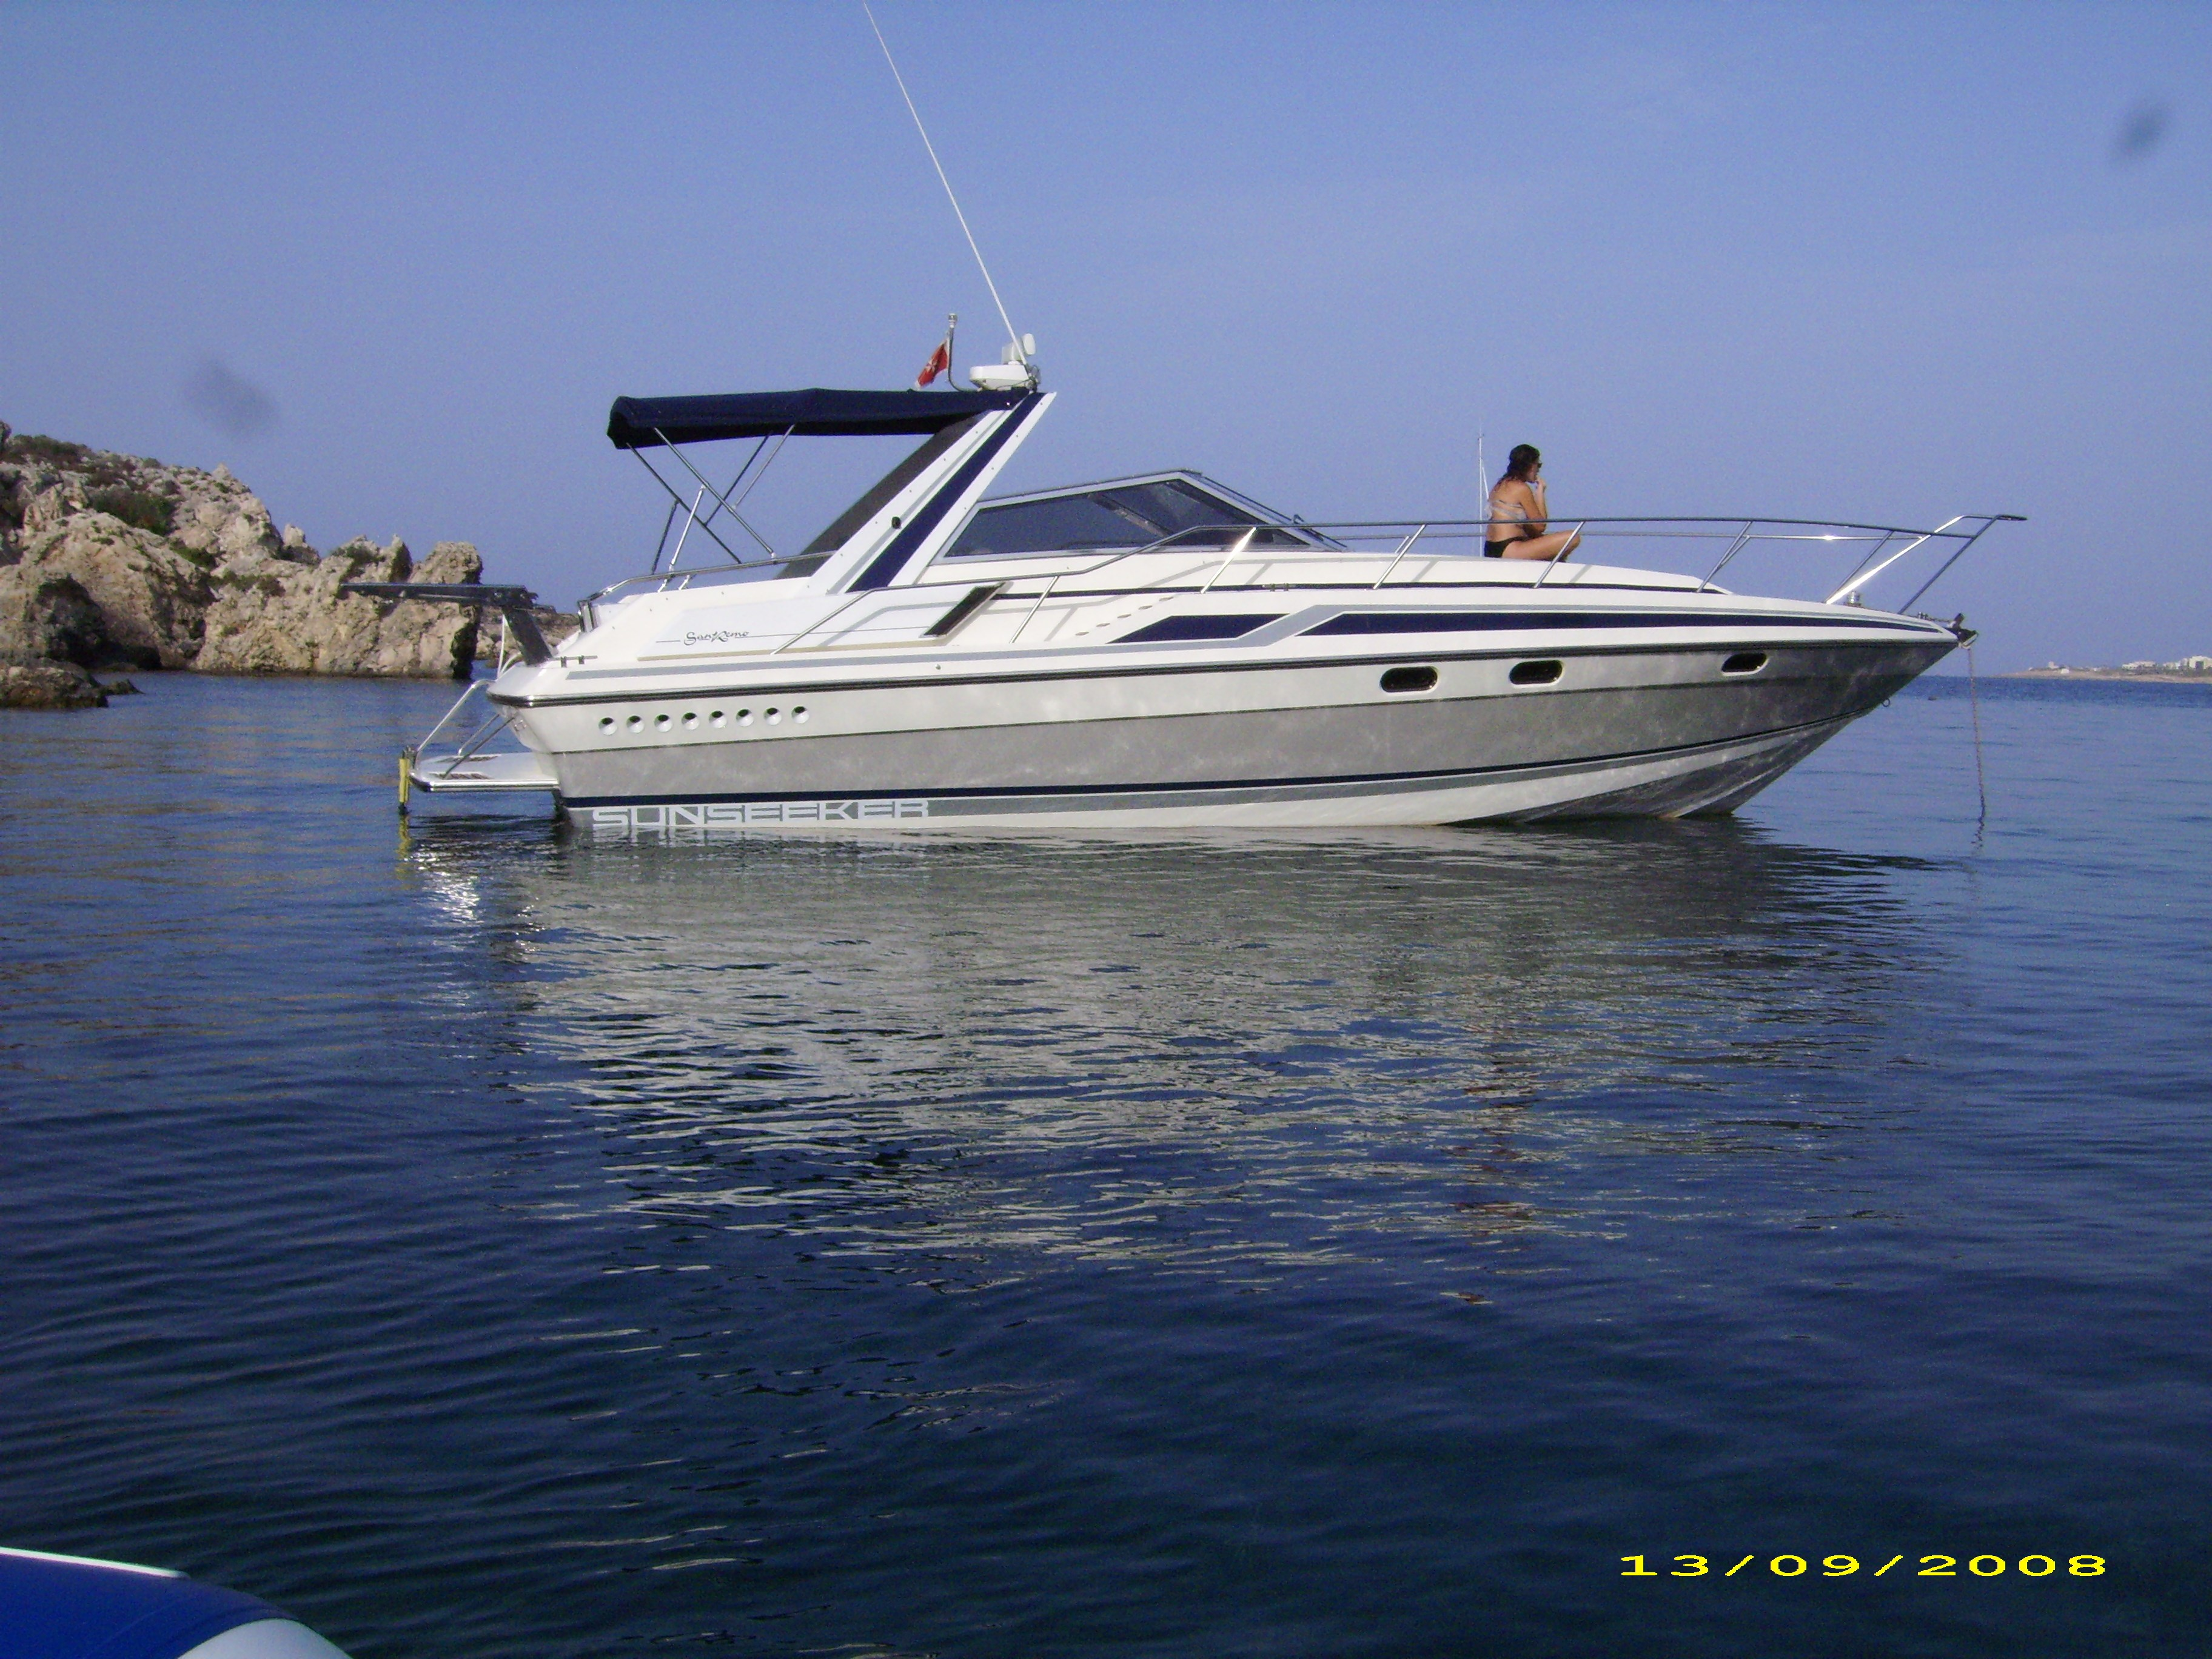 Rent / charter Motor Boat for Boat Parties, Conference & Incentive / Meetings / Corporate, Full Day Tour, Half Day Tour, Harbour Cruise, Private Charter & Team Building Activities in Malta & Gozo - Sunseeker San Remo 33